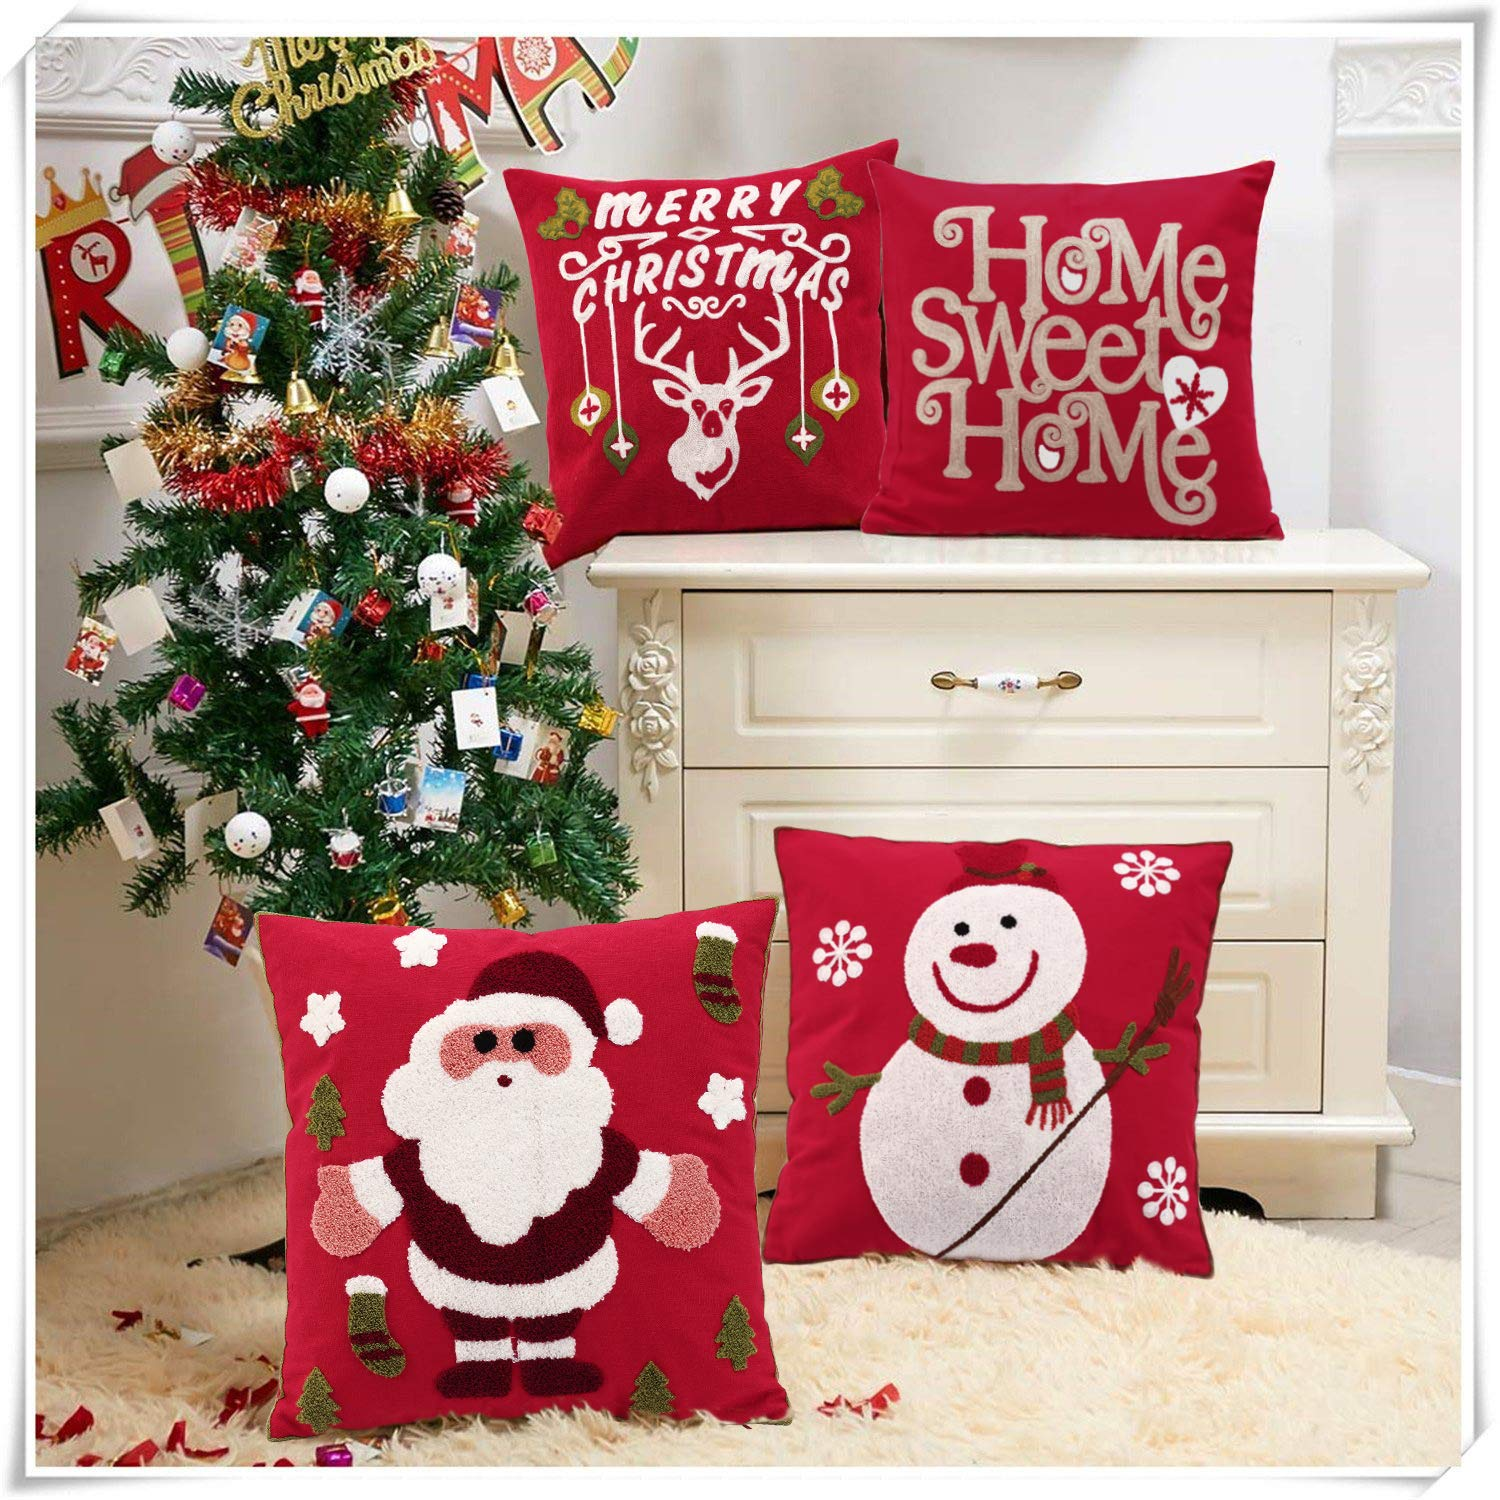 Oneslong Red Christmas Pillow Covers Embroidery Throw Pillow Cases 18x18 inch Santa Merry Christmas Decorative Sofa Cushion Covers